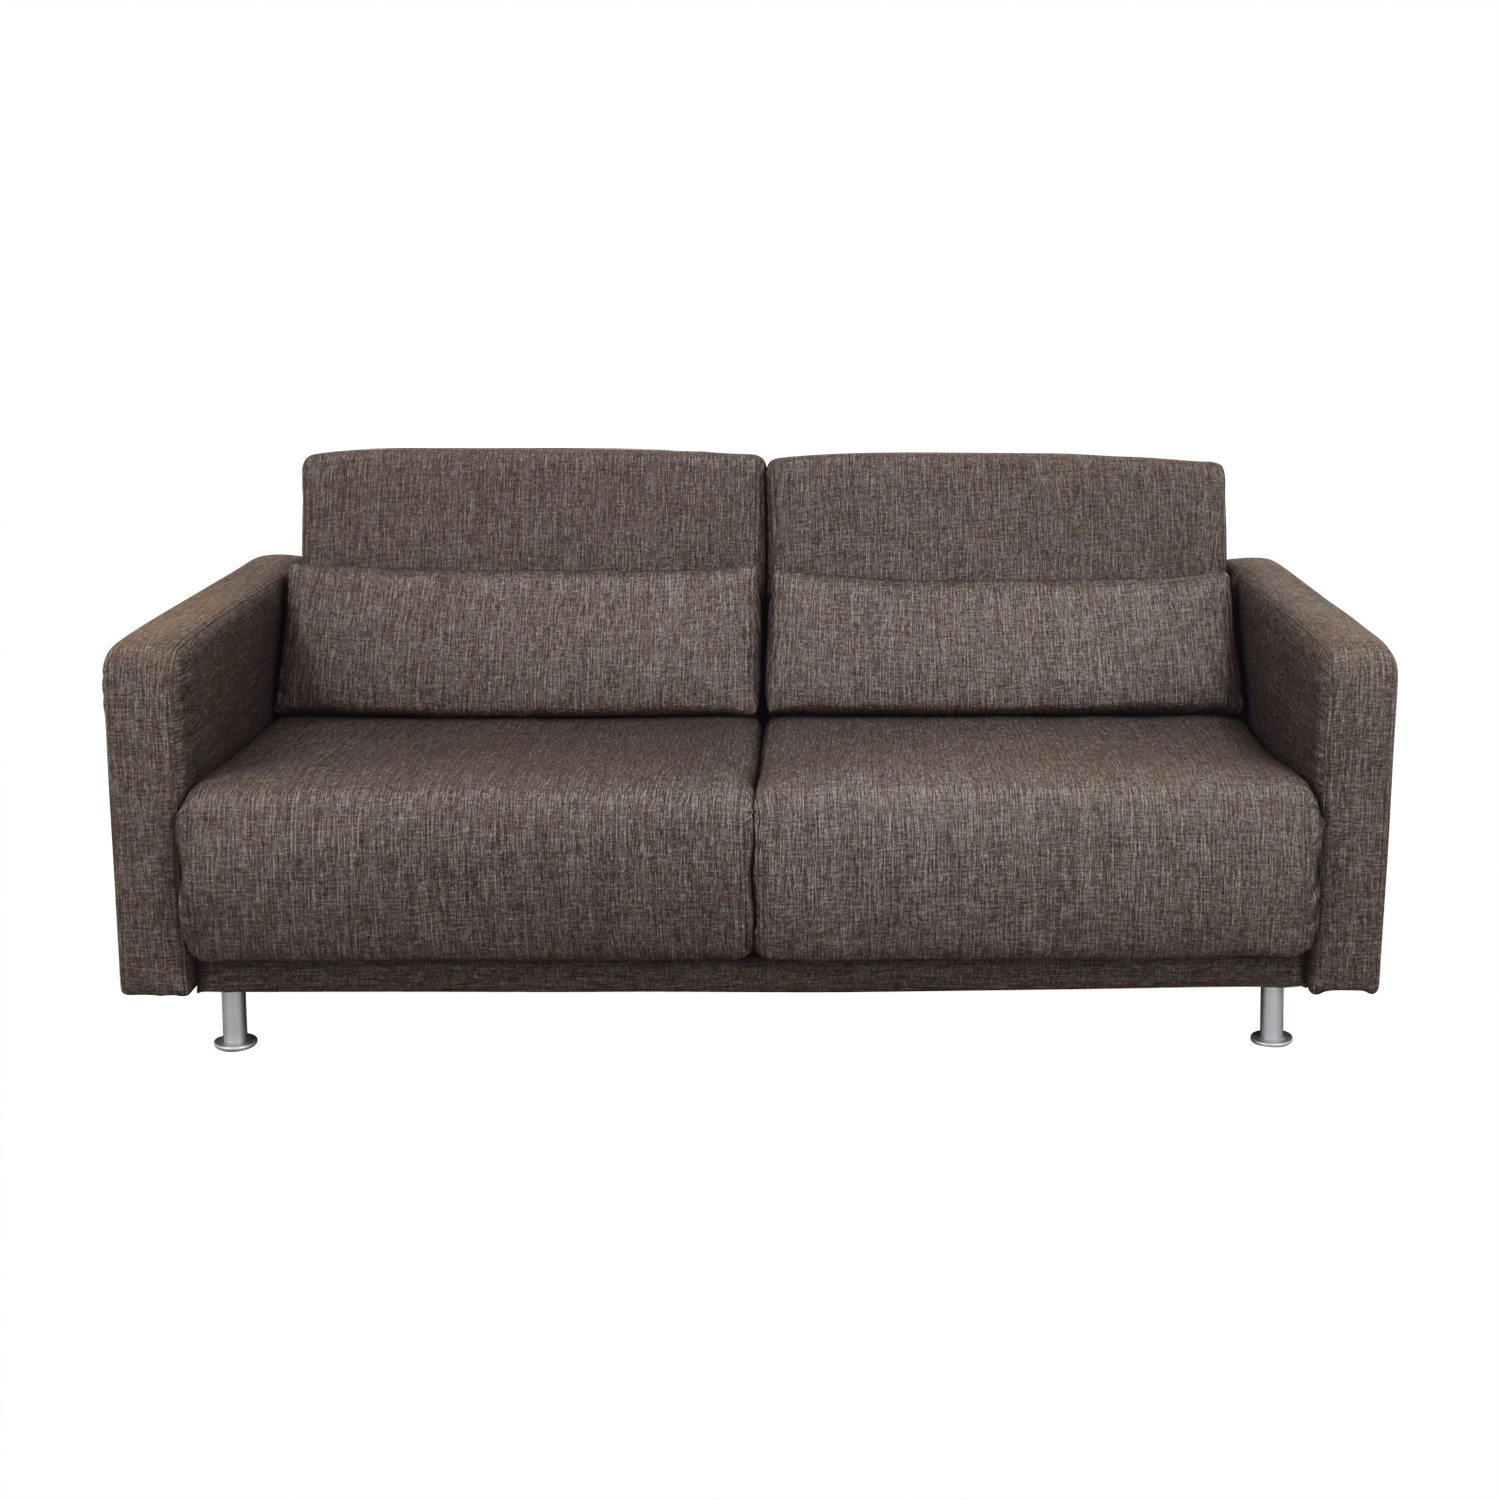 Bo concept sleeper sofa - Sofa sleeper for small spaces concept ...